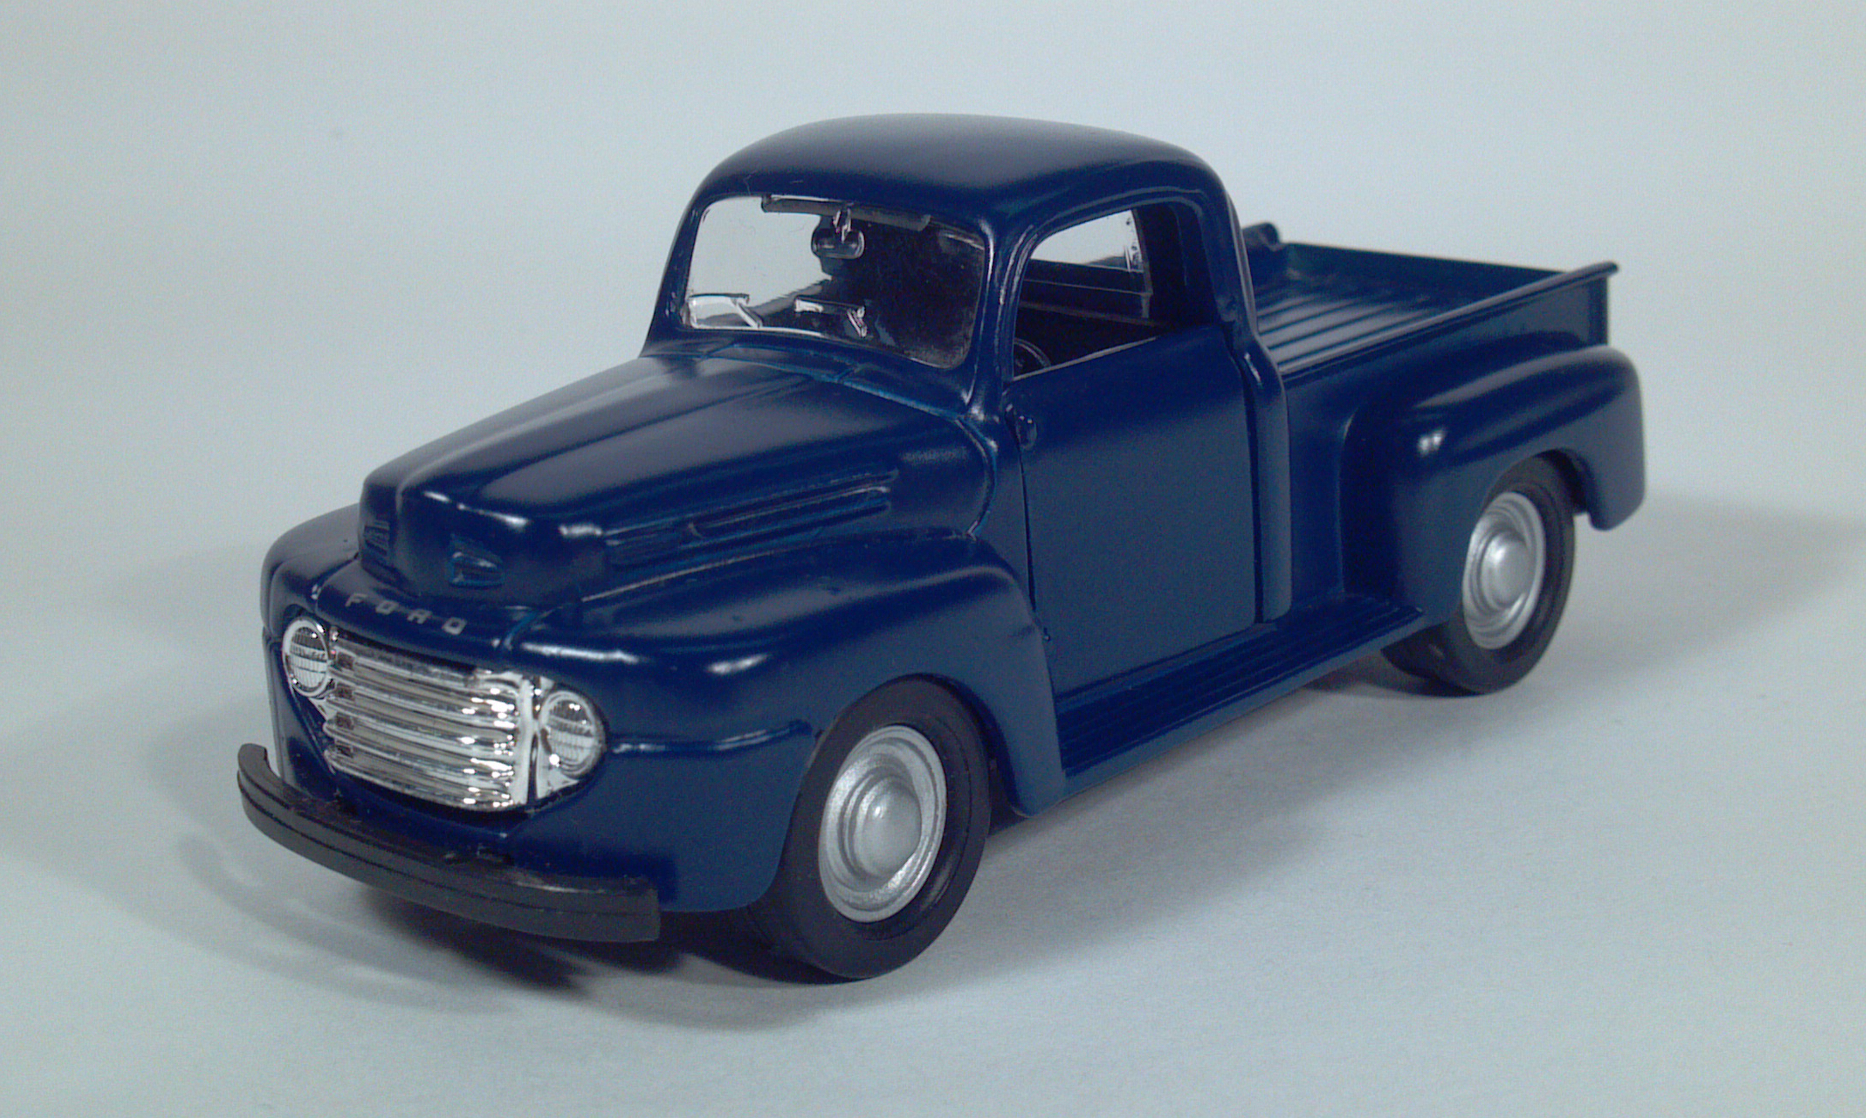 Maisto 1948 1949 1950 ford f1 f2 pickup truck diecast 1 36 scale model toy